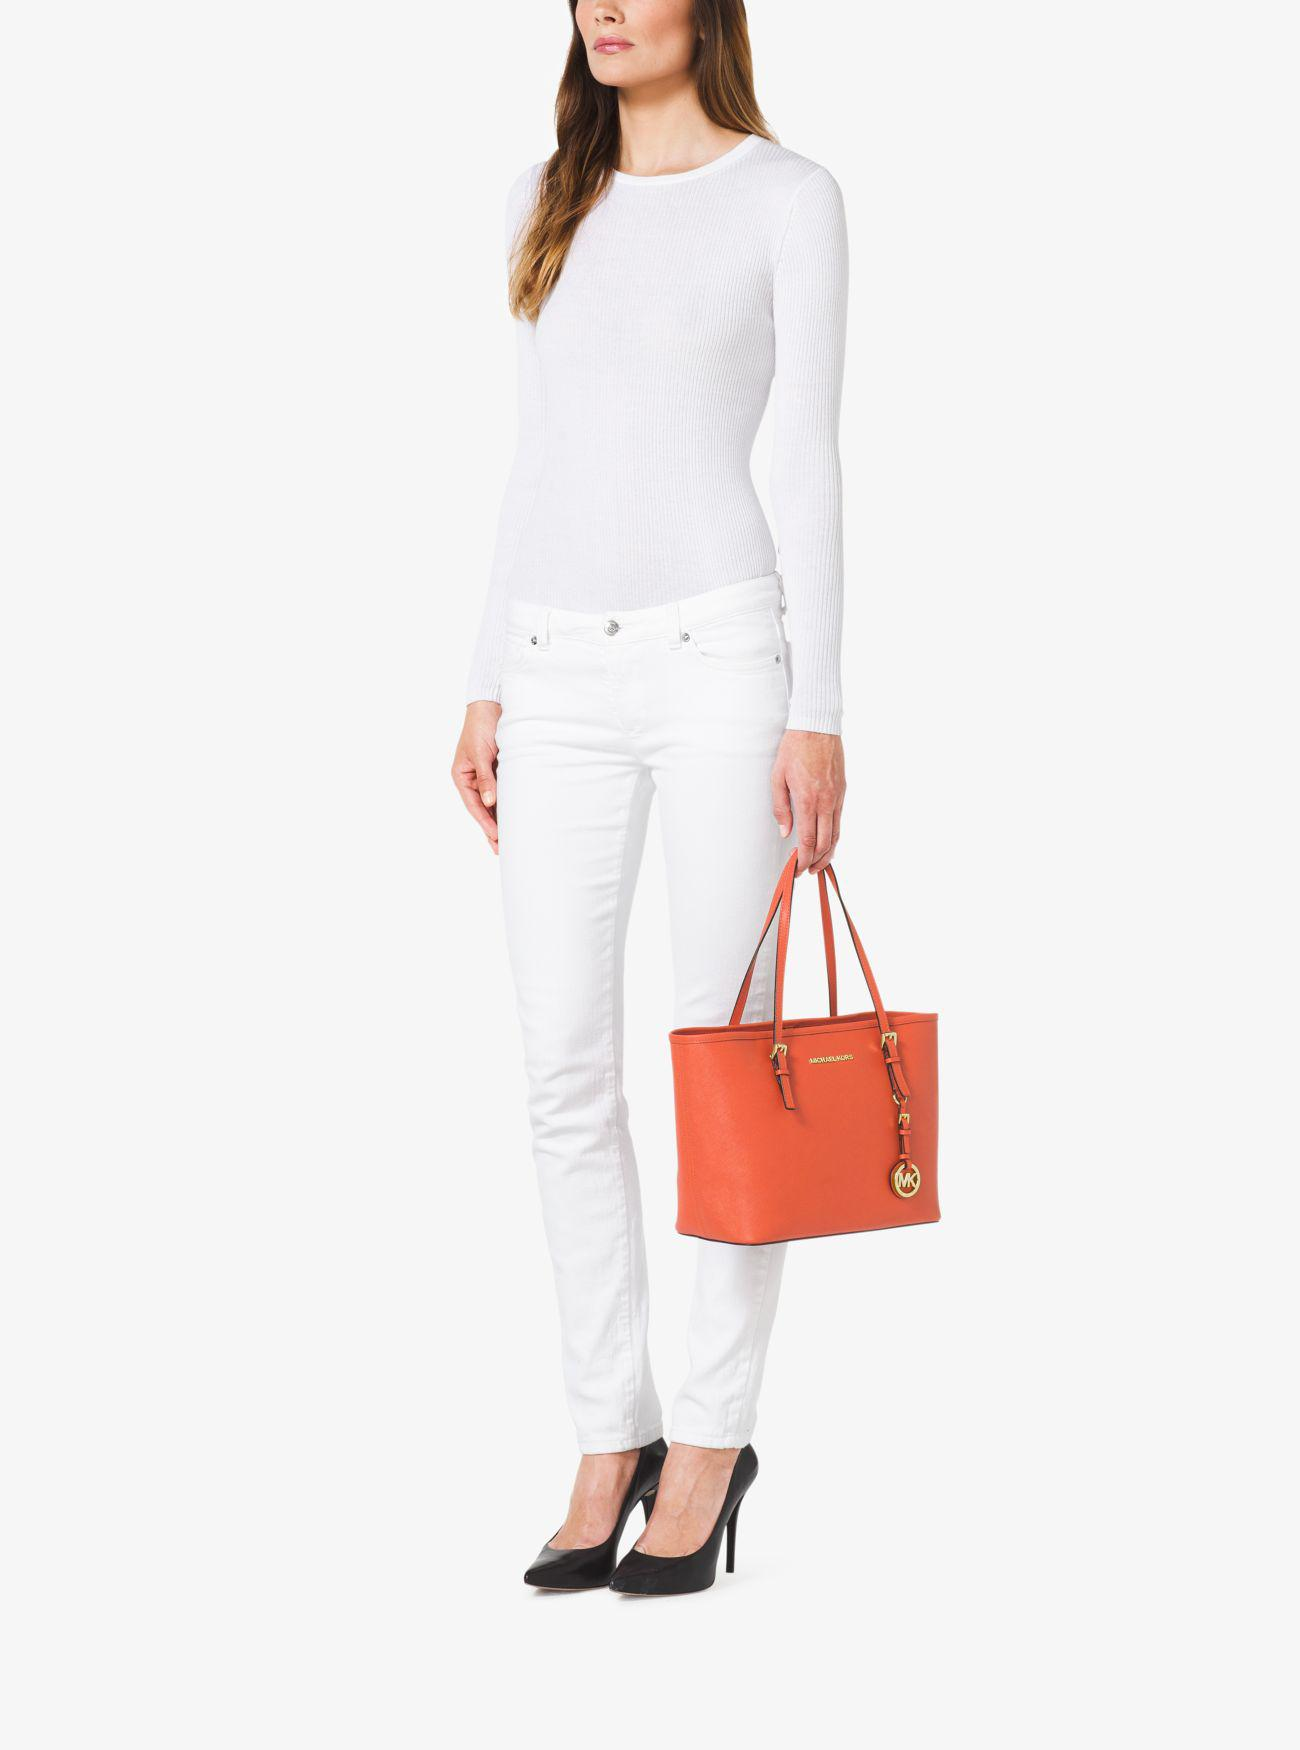 e40830485d62 Michael Kors Jet Set Saffiano Leather Small Tote Bag in Orange - Lyst